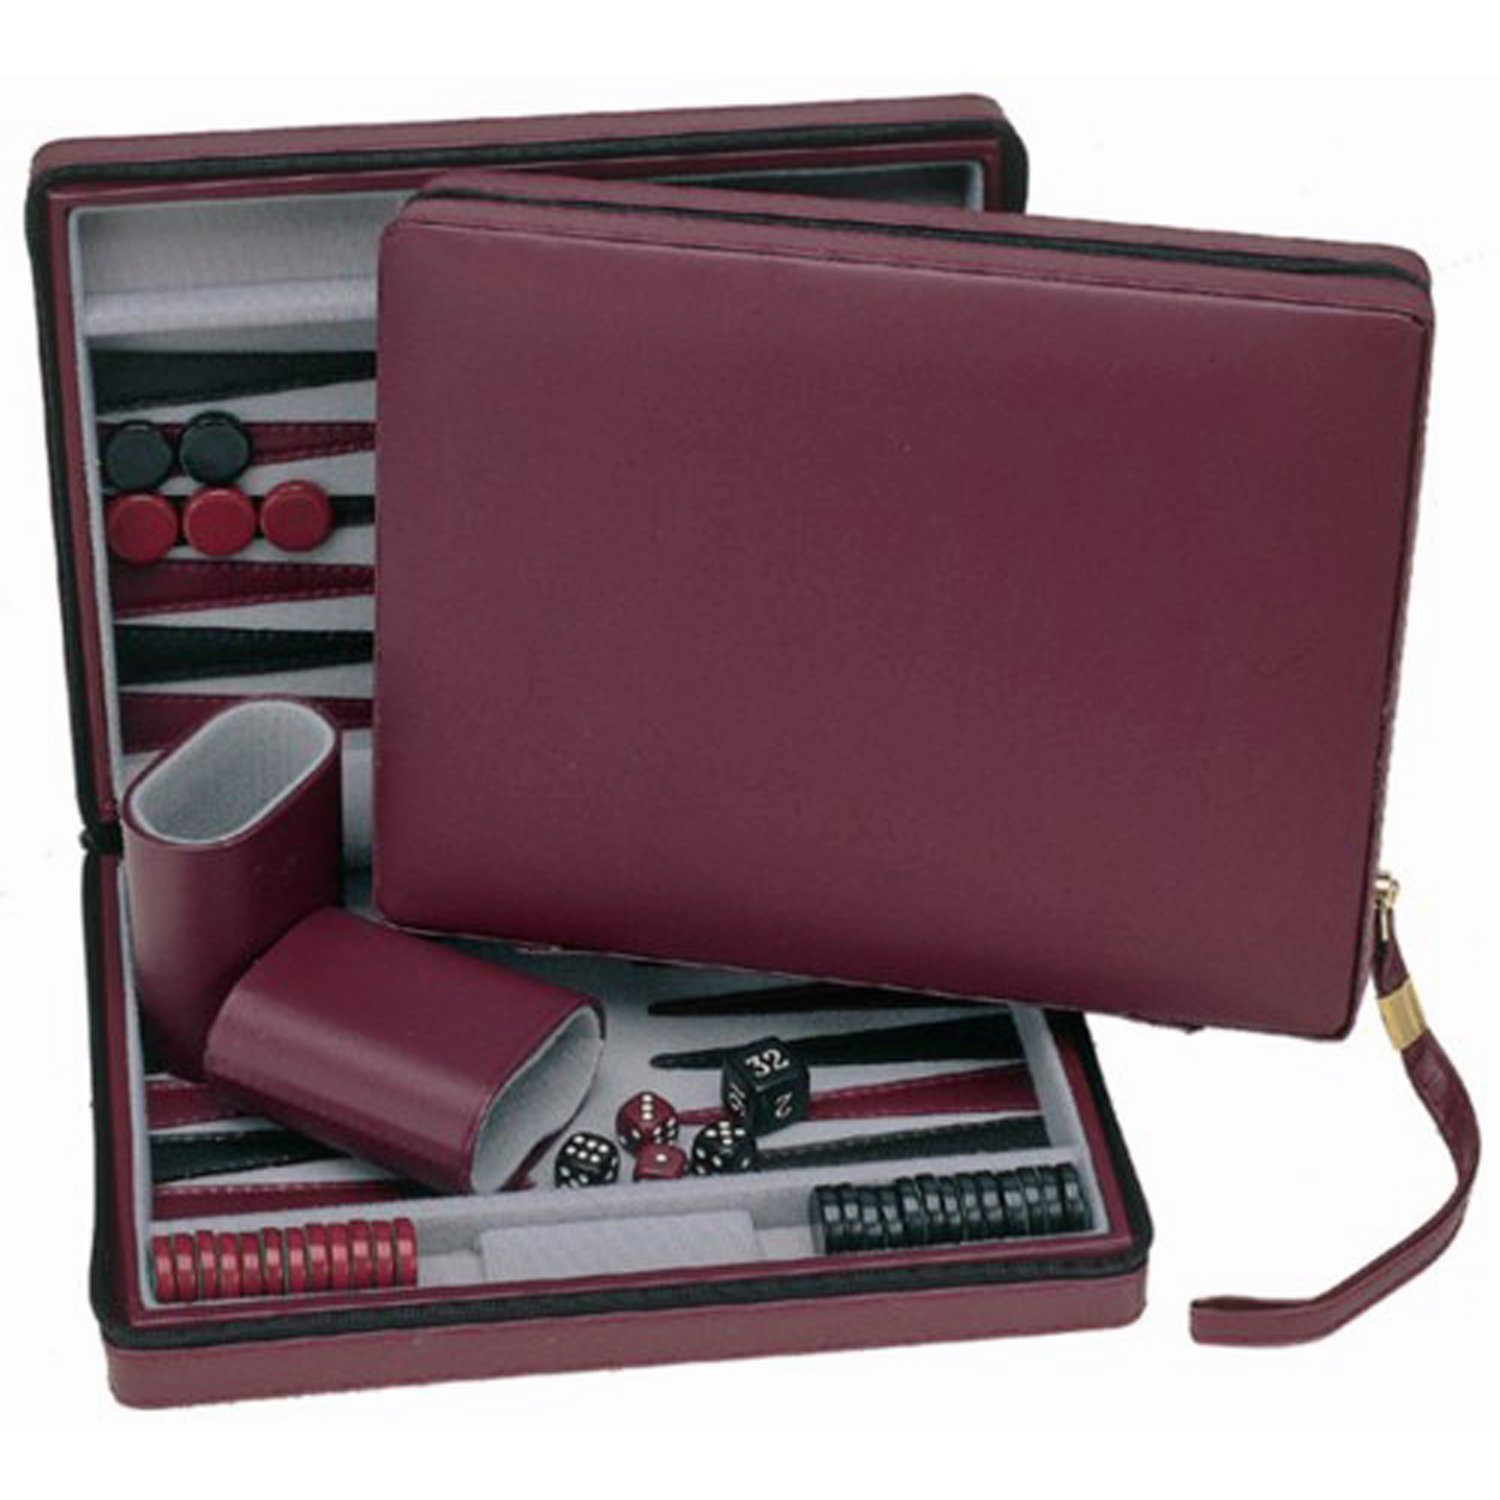 WE Games Burgundy Magnetic Backgammon Set with Carrying Strap - Travel Size by WE Games